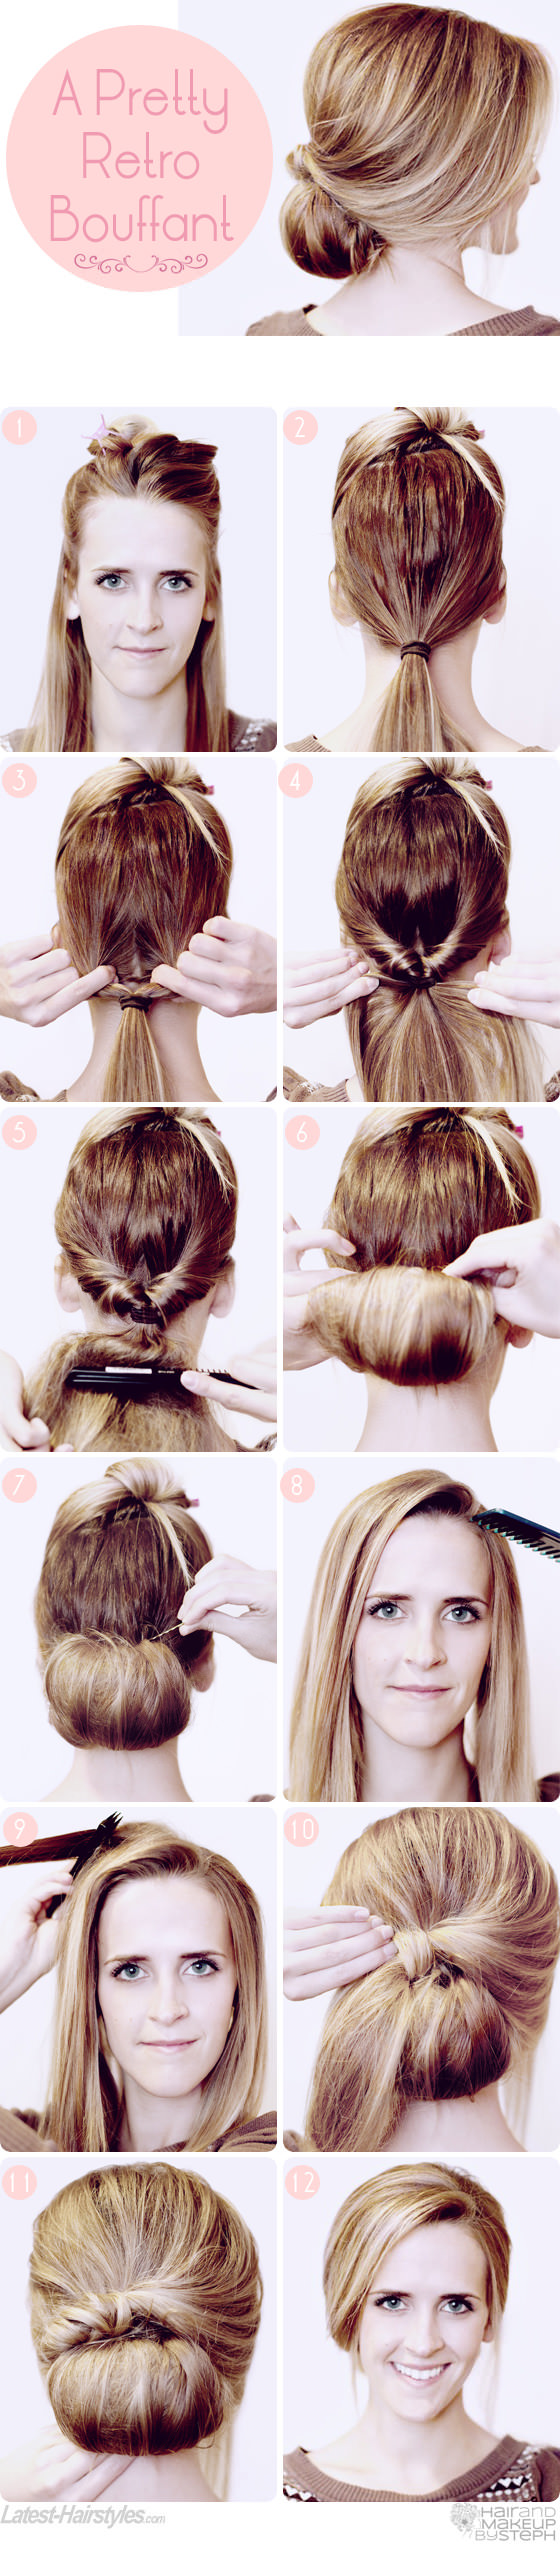 sleek bouffant tutorial